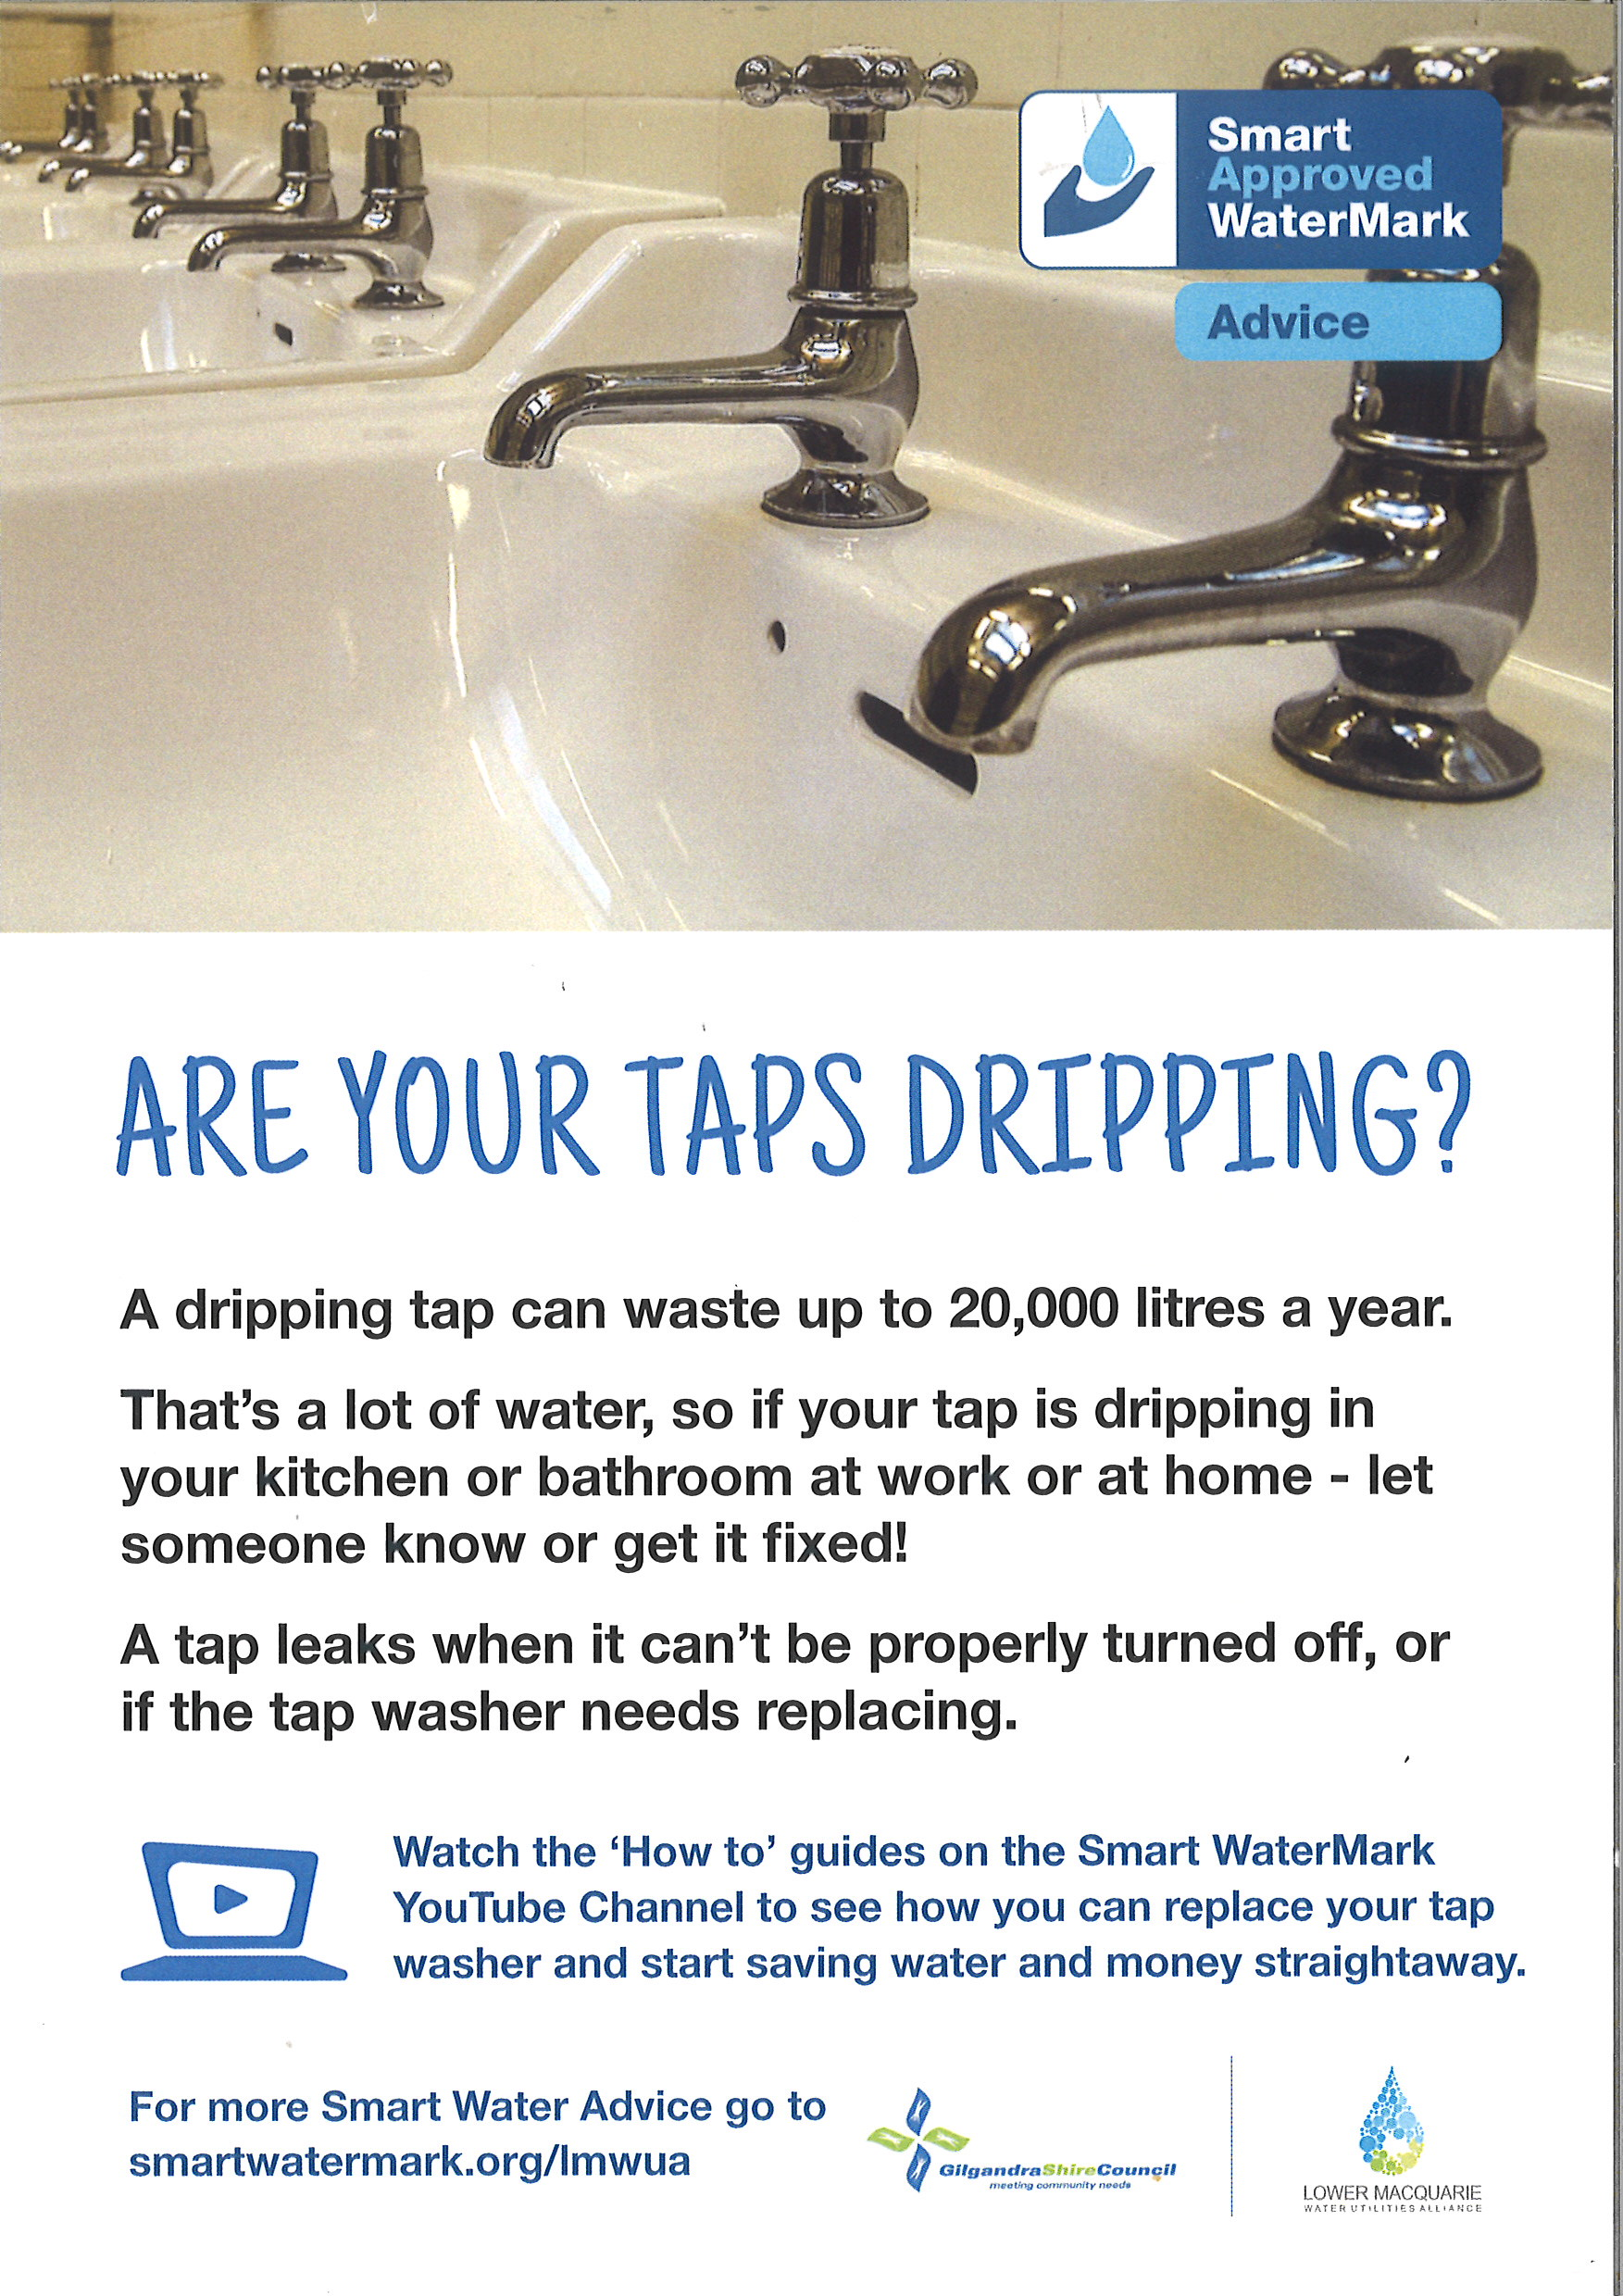 Are-your-taps-dripping.jpg